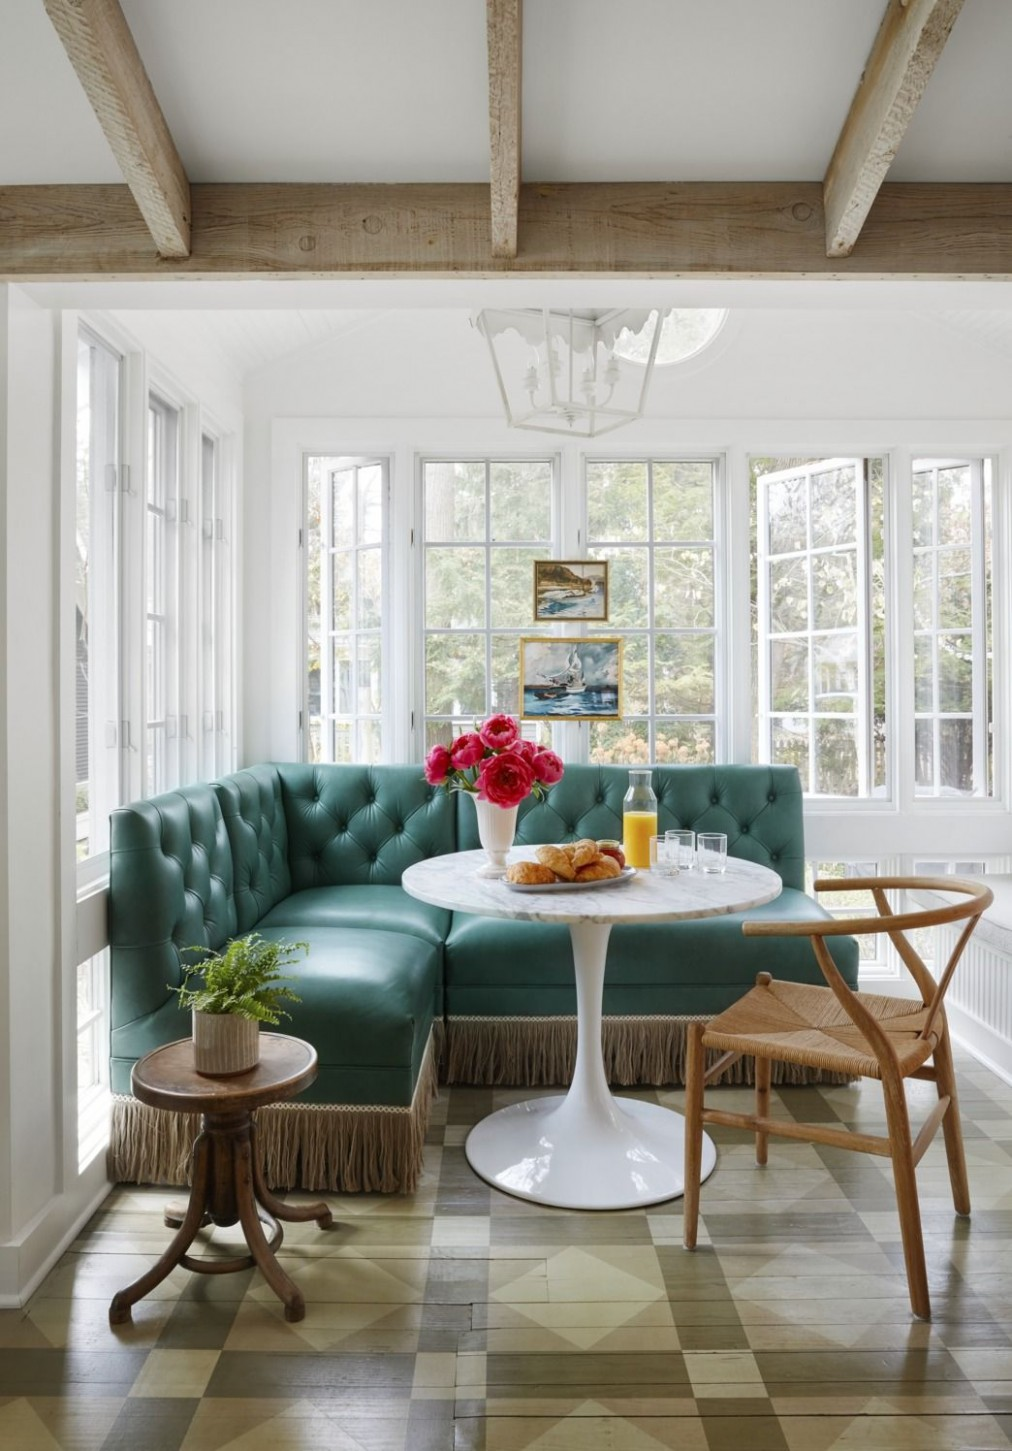 9 Best Dining Room Decorating Ideas - Country Dining Room Decor - Dining Room Ideas In Uk